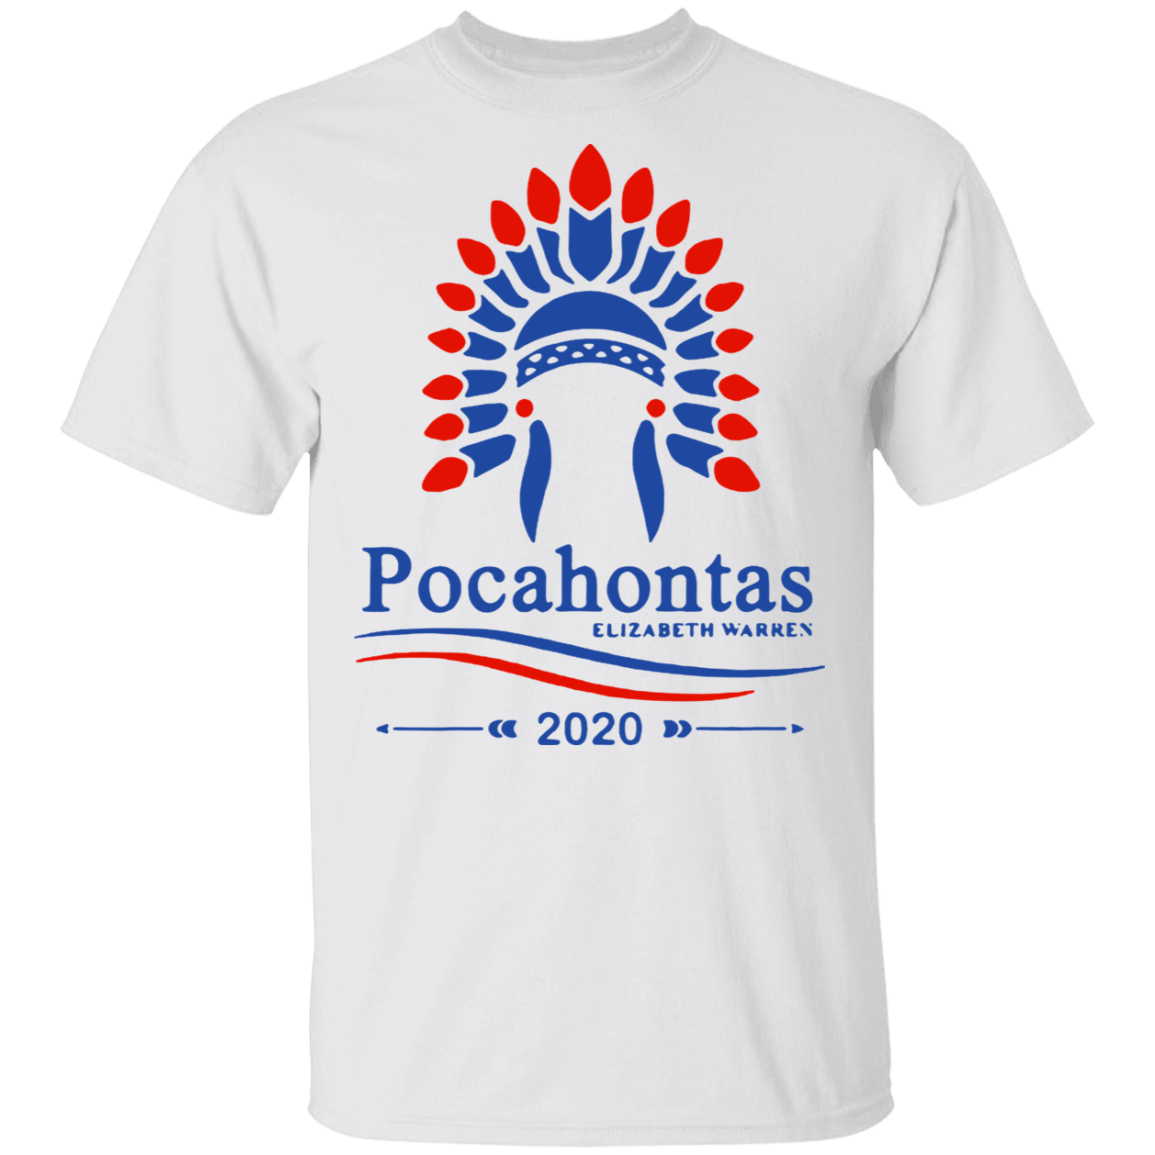 Elizabeth Warren Pocahontas T-Shirt Democratic Party Campaign US Senator For Against Trump